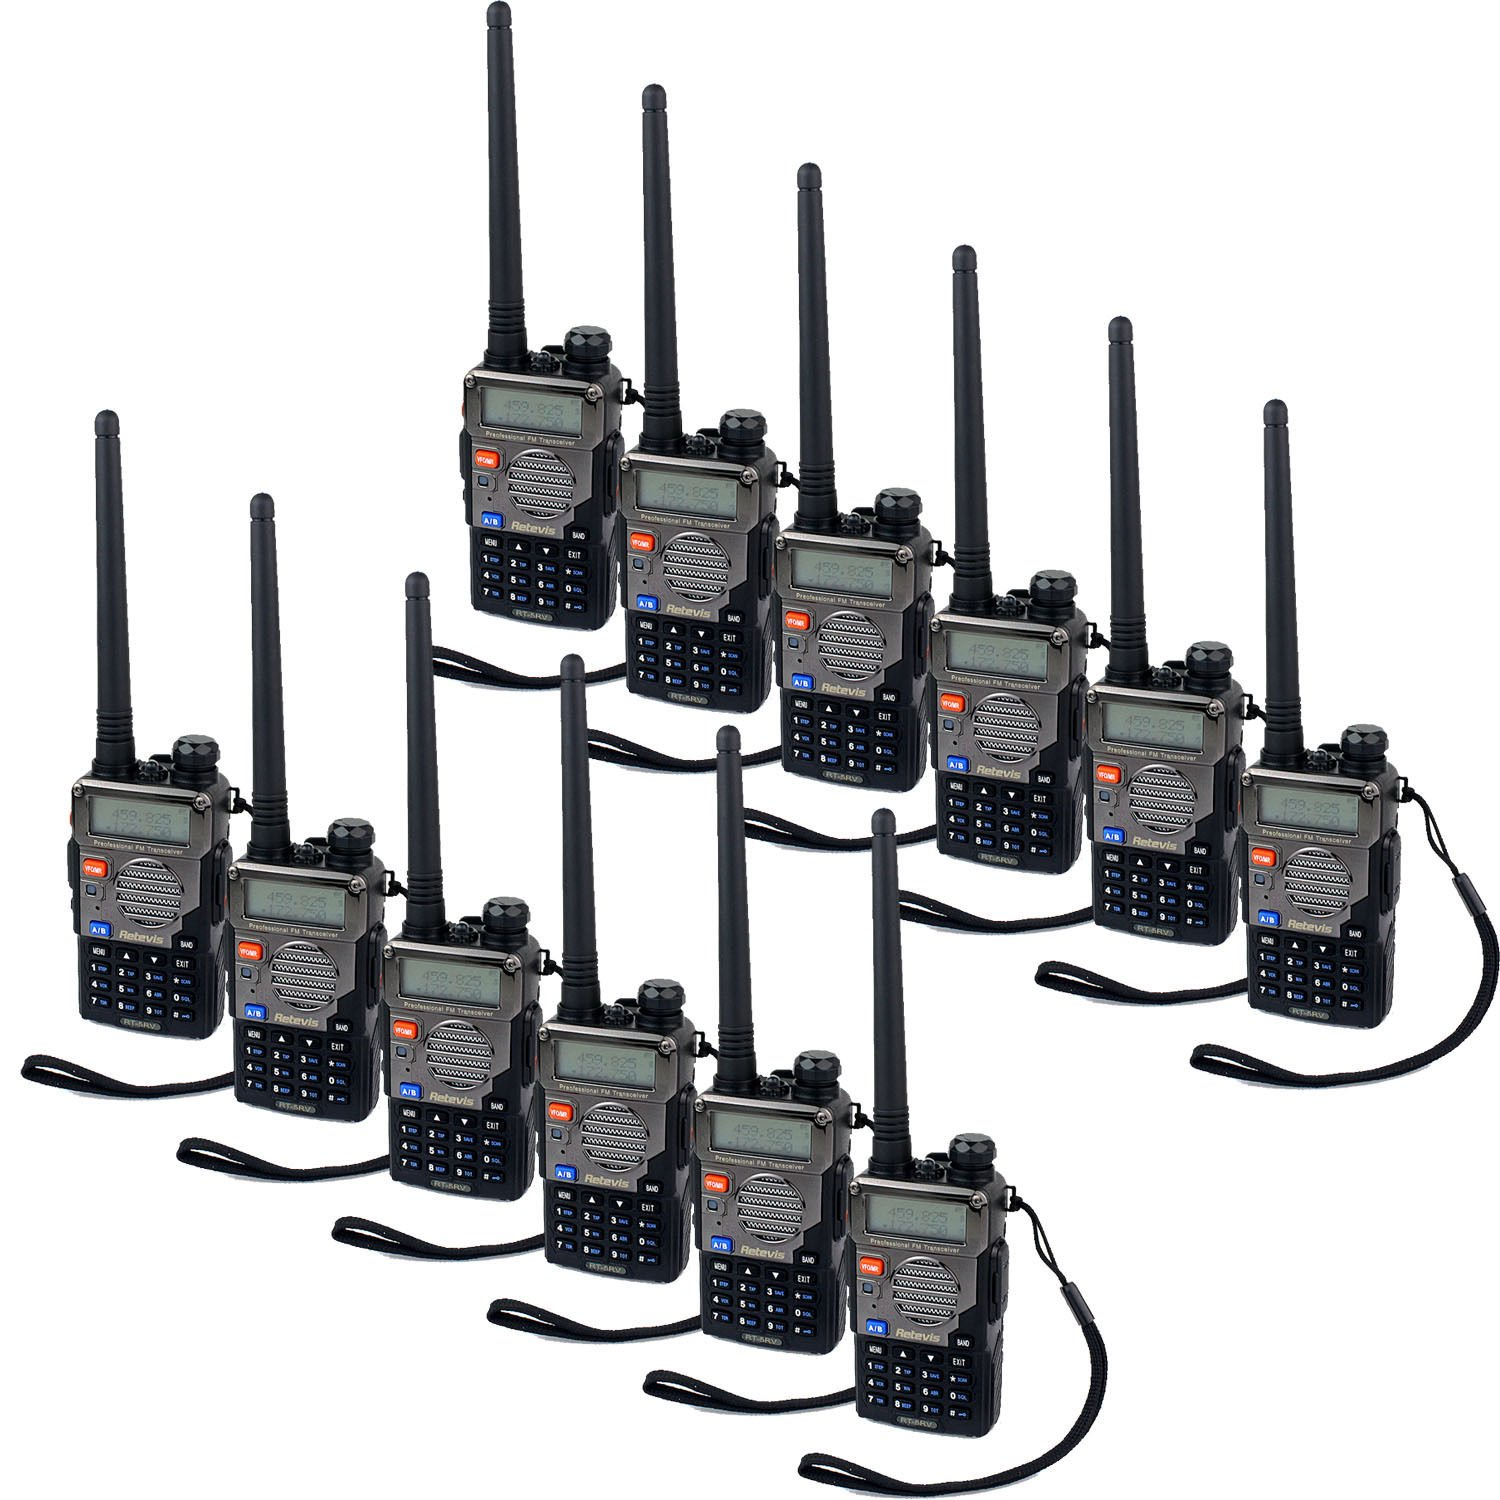 12x Retevis RT-5RV Walkie Talkie 128CH VHF/UHF CTCSS/DCS